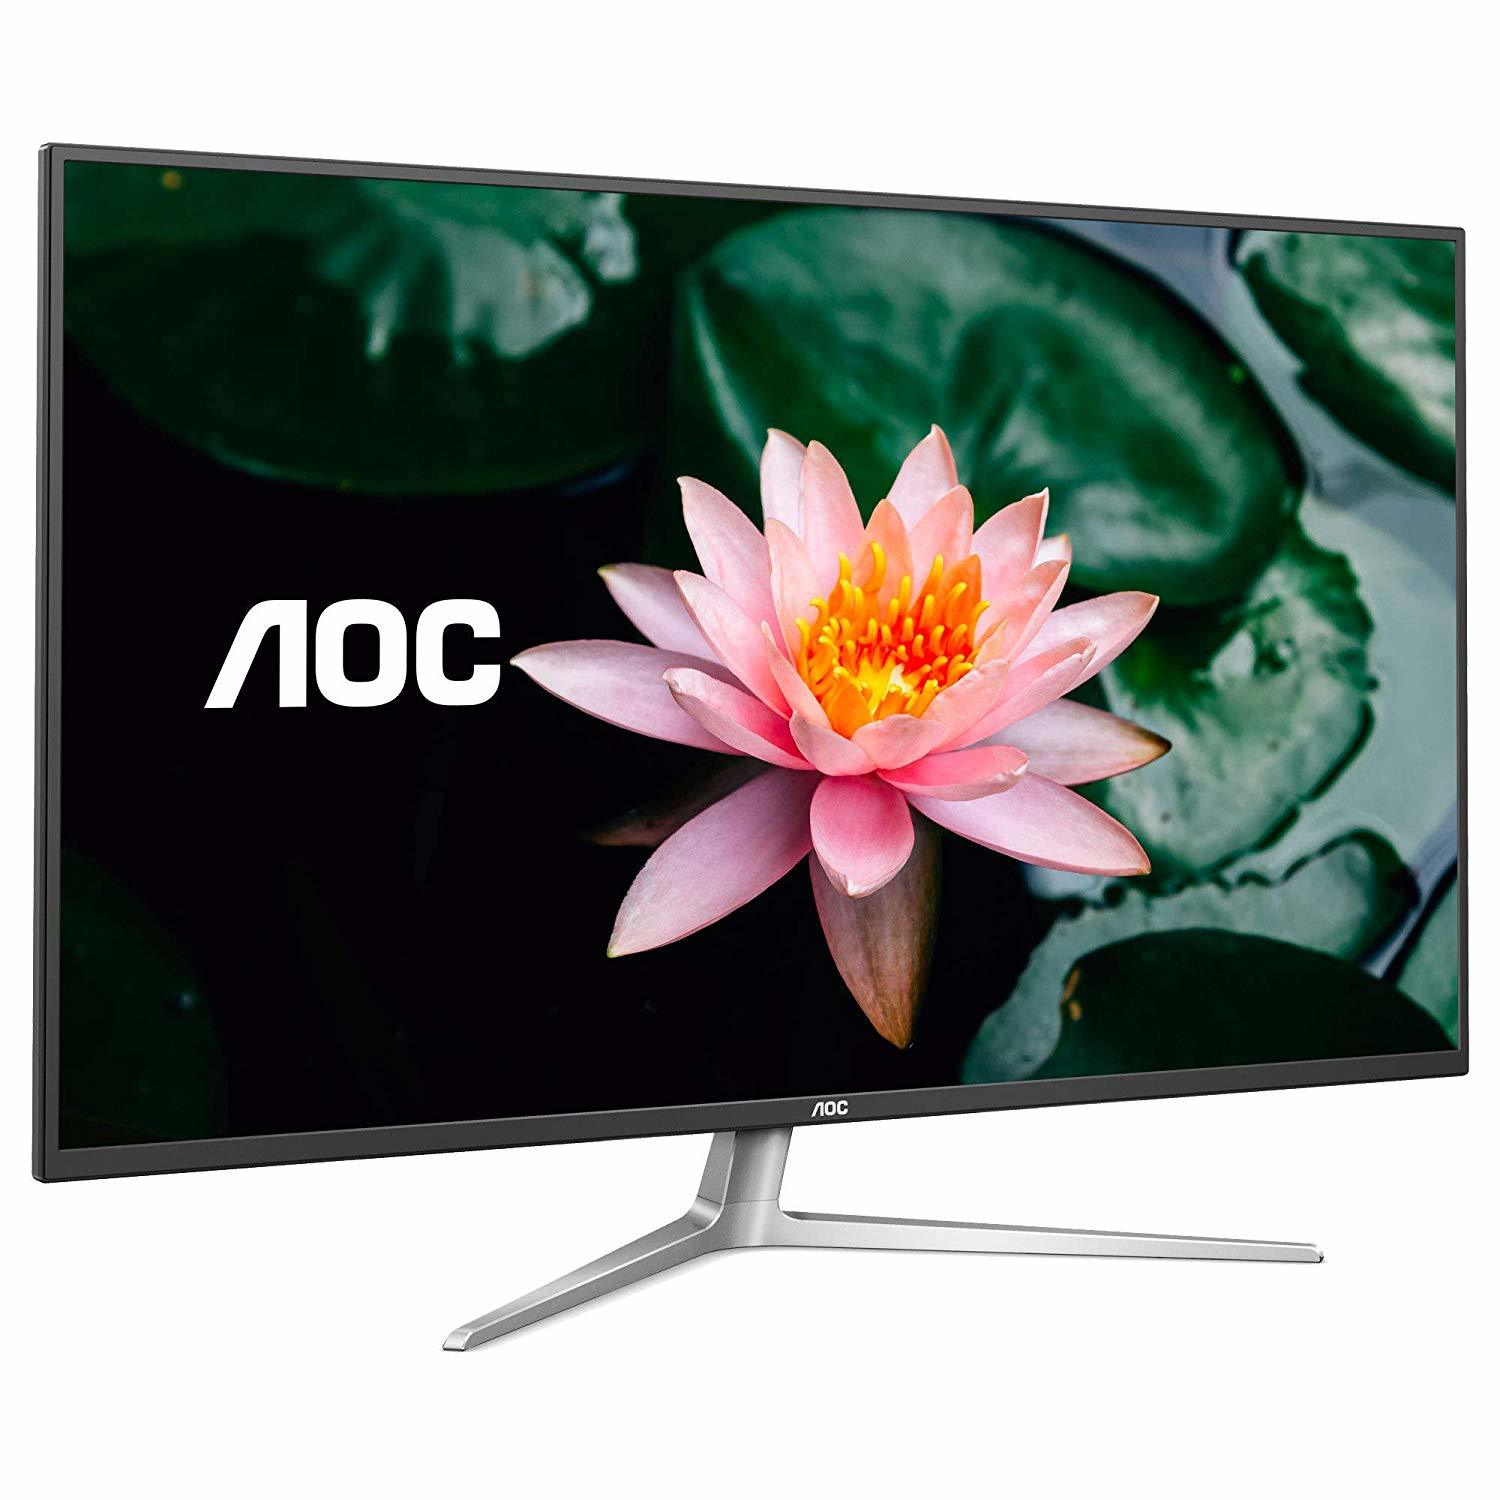 "42.5"" AOC 4k IPS 109% NTSC Flicker Free Monitor"